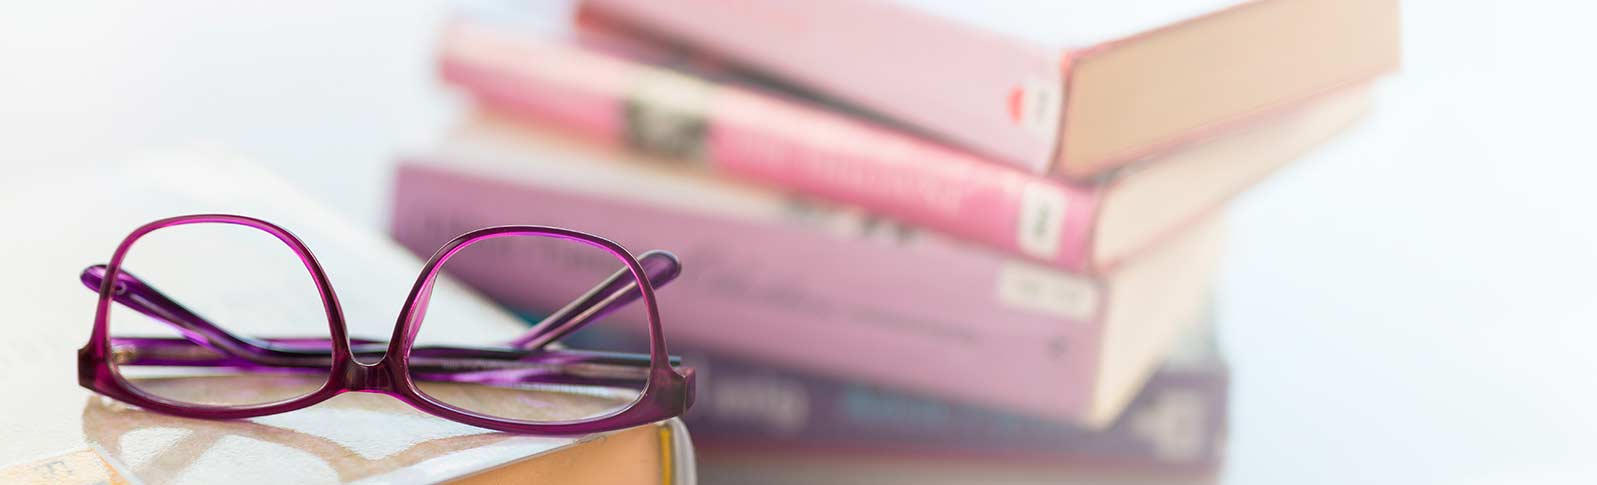 books and glasses on a table